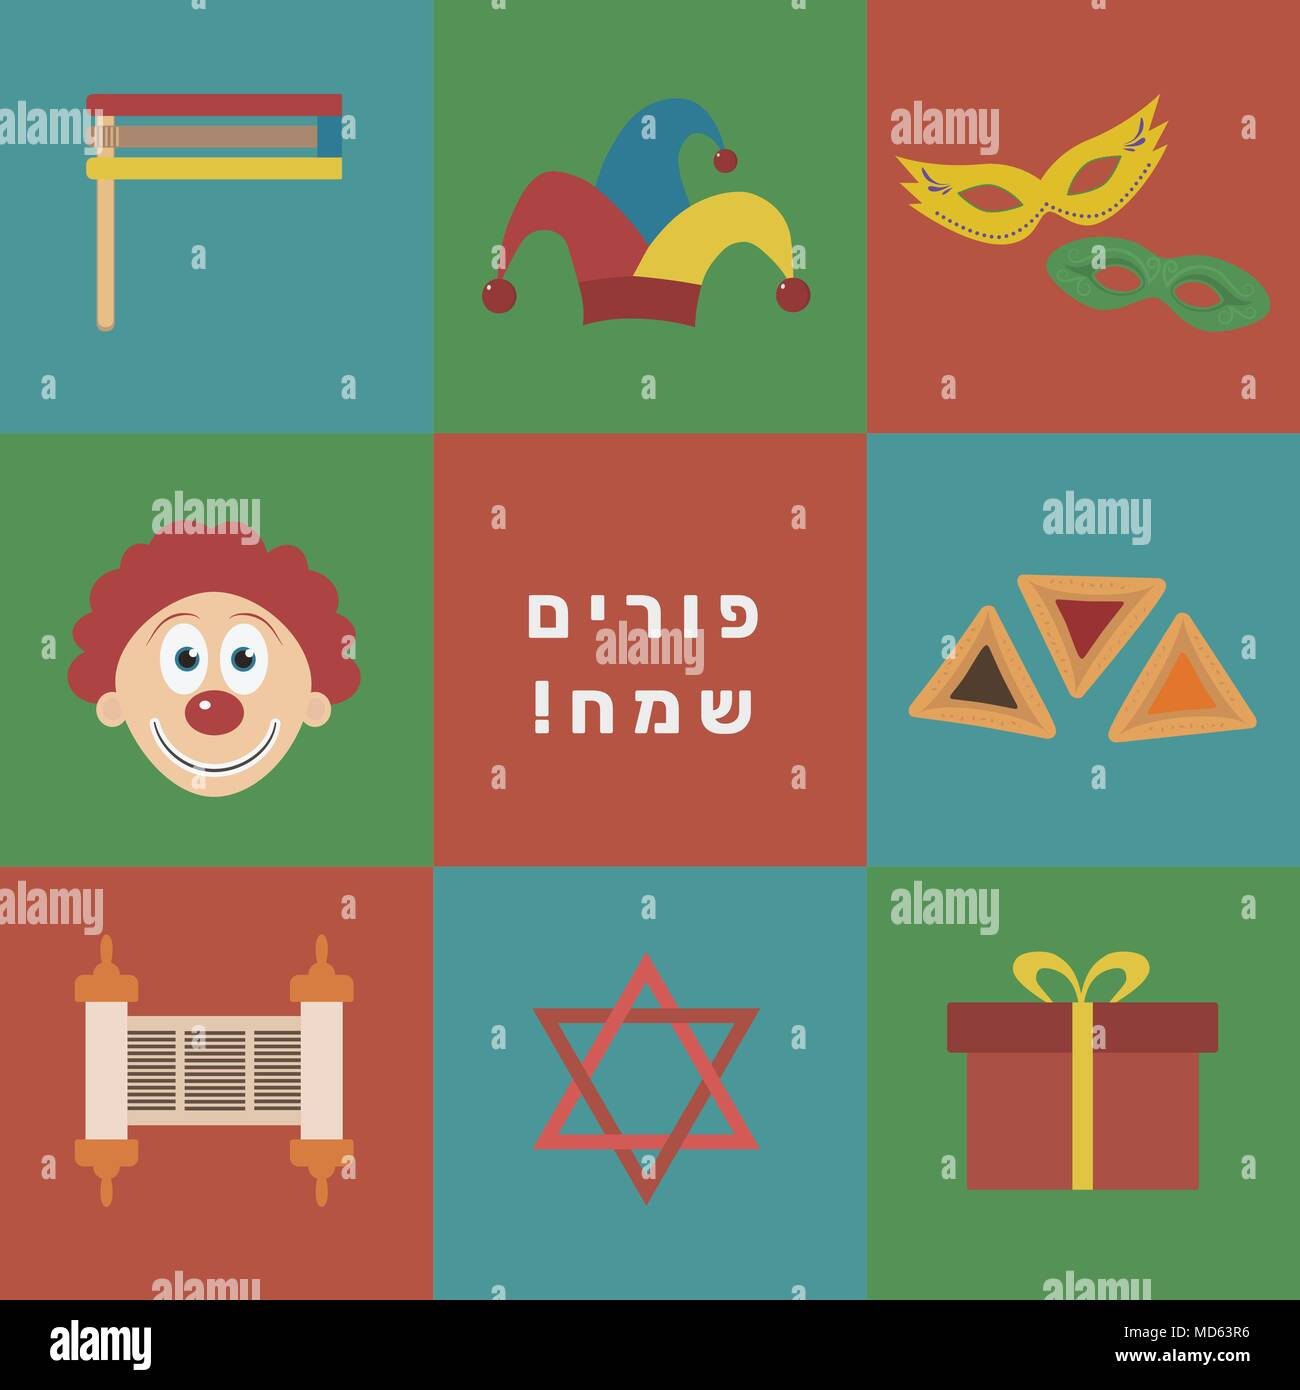 Purim holiday flat design icons set with text in hebrew Purim Sameach meaning Happy Purim. Vector eps10 illustration. - Stock Vector